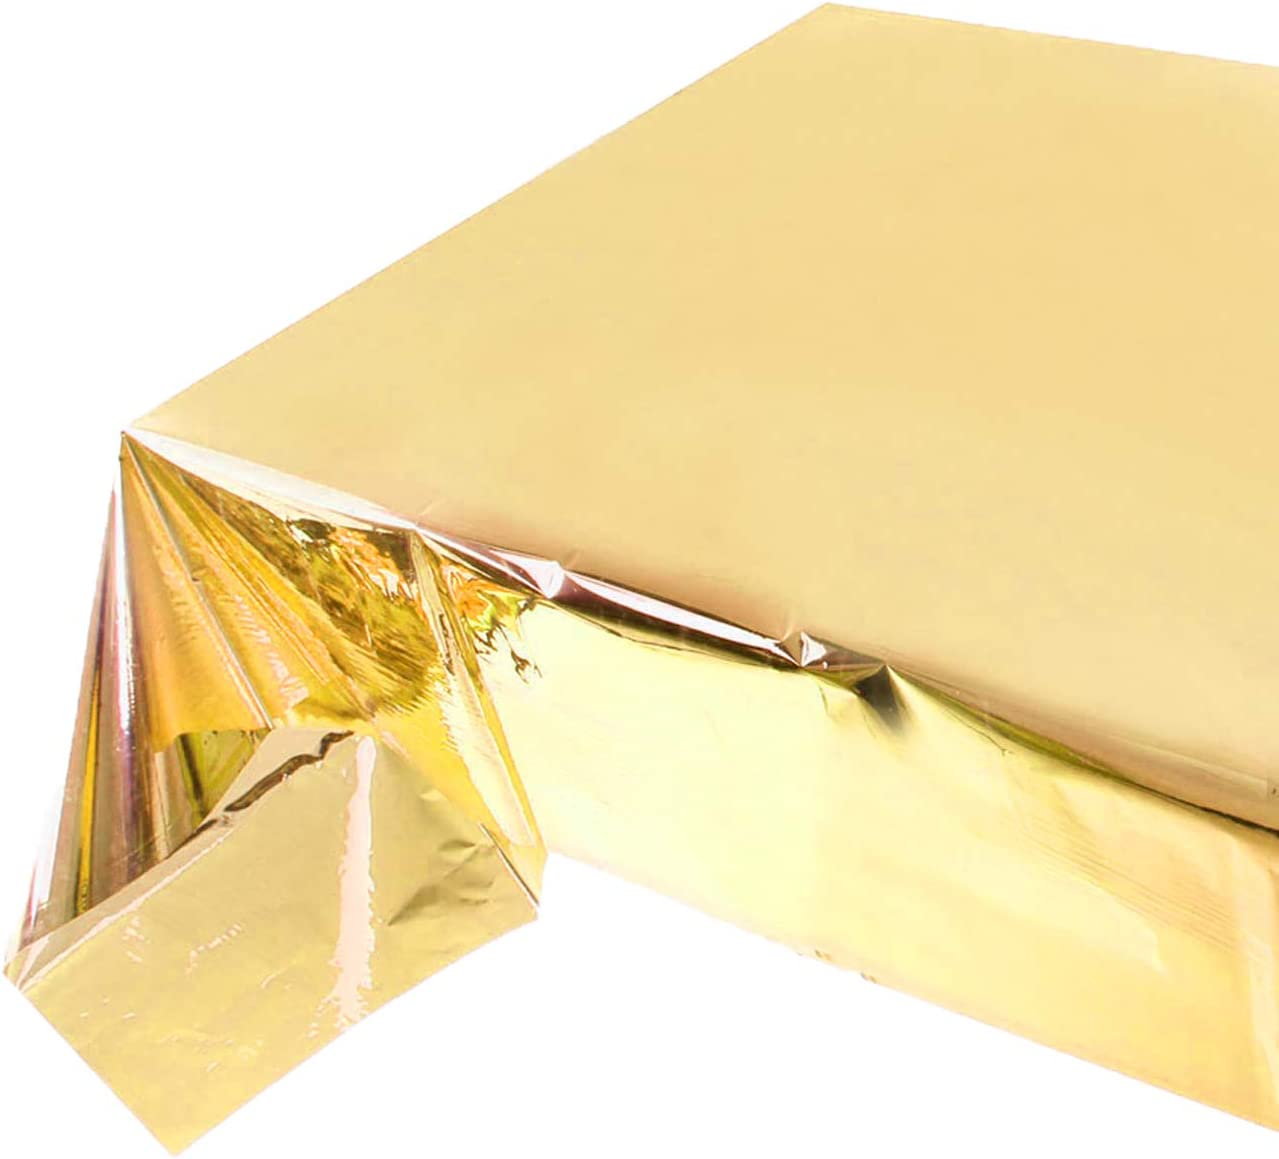 Reofrey 2 Pack Golden Foil Tablecloth Table Cover Shiny Plastic Party Table Cloth for Banquet Festival Party Table Decoration (54x 108 Inch)